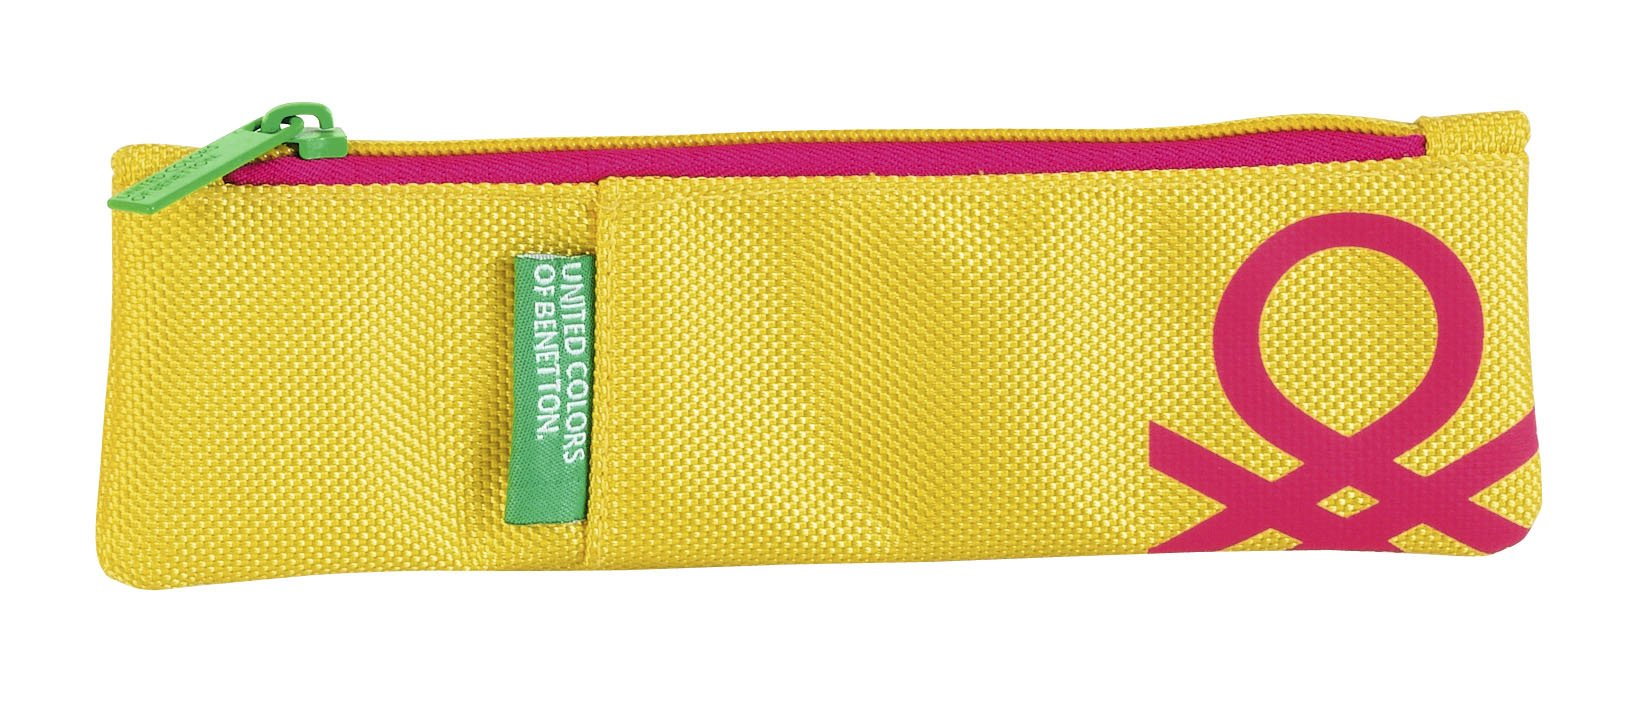 Benetton yellow. Portatodo estrecho